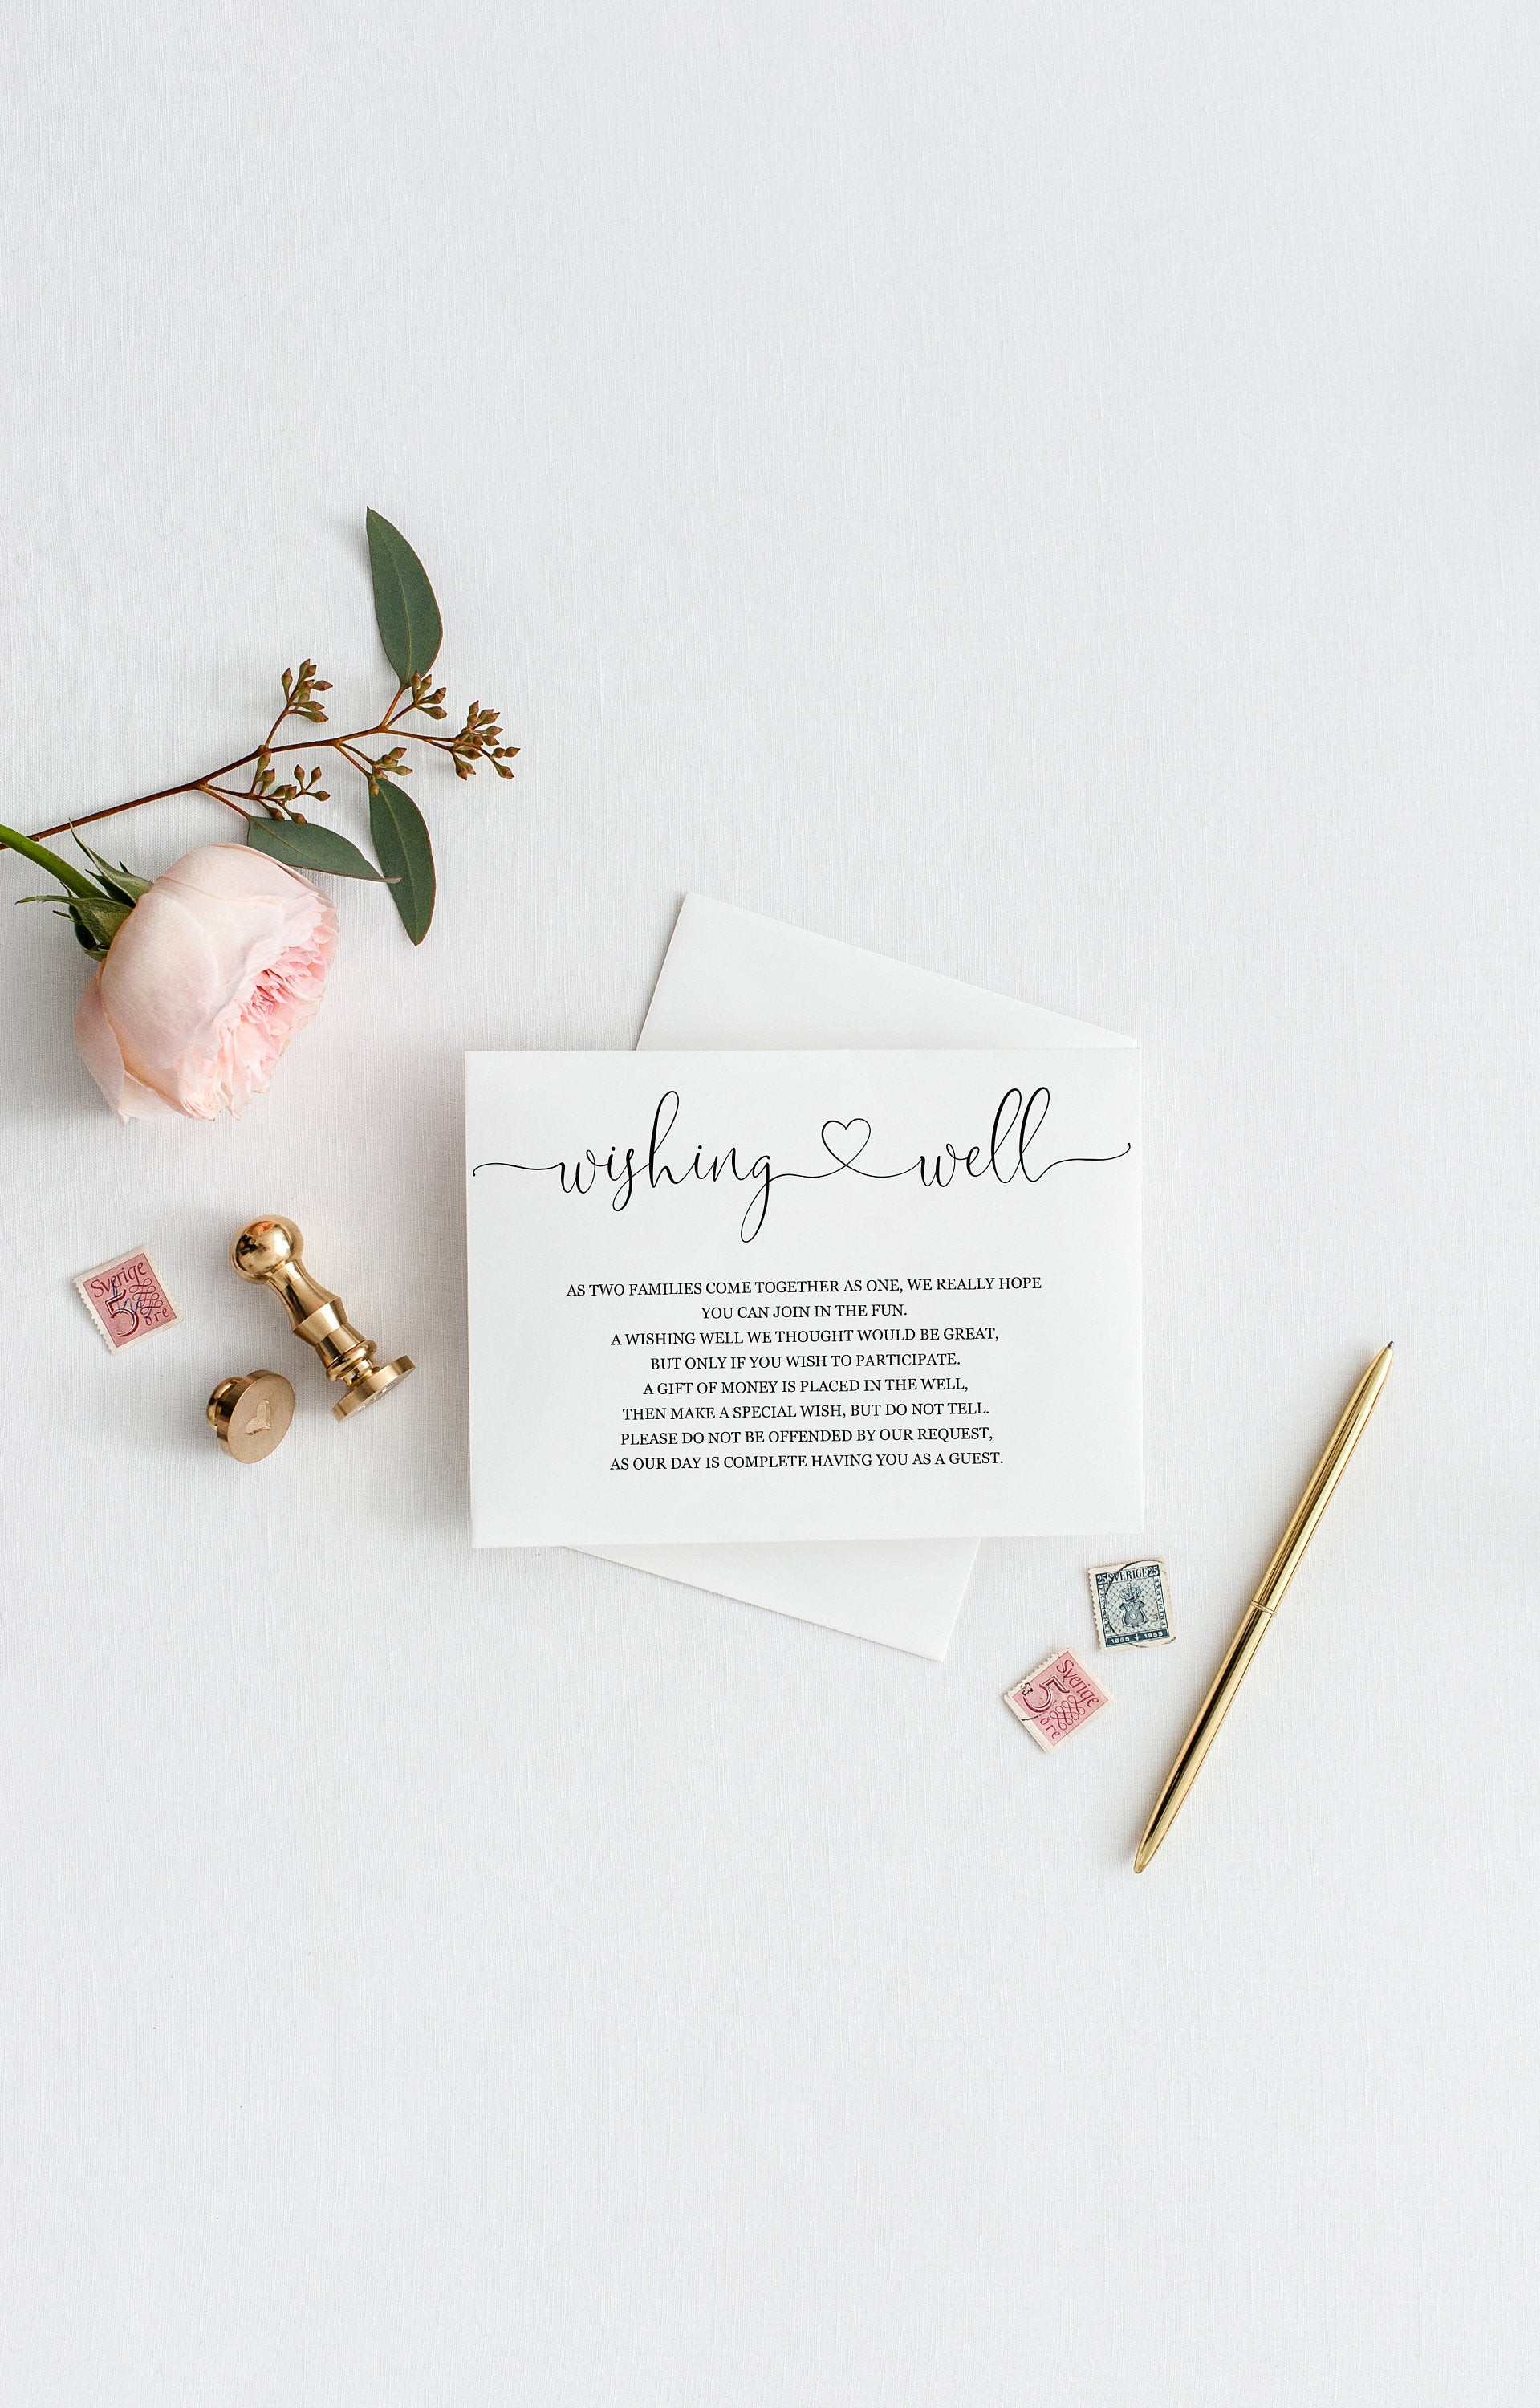 Simple Wedding Wishing Well Card Template,Instant Download, Editable Wishing, Wishing well Cards Insert, Calligraphy,Rustic,Heart  - Heather